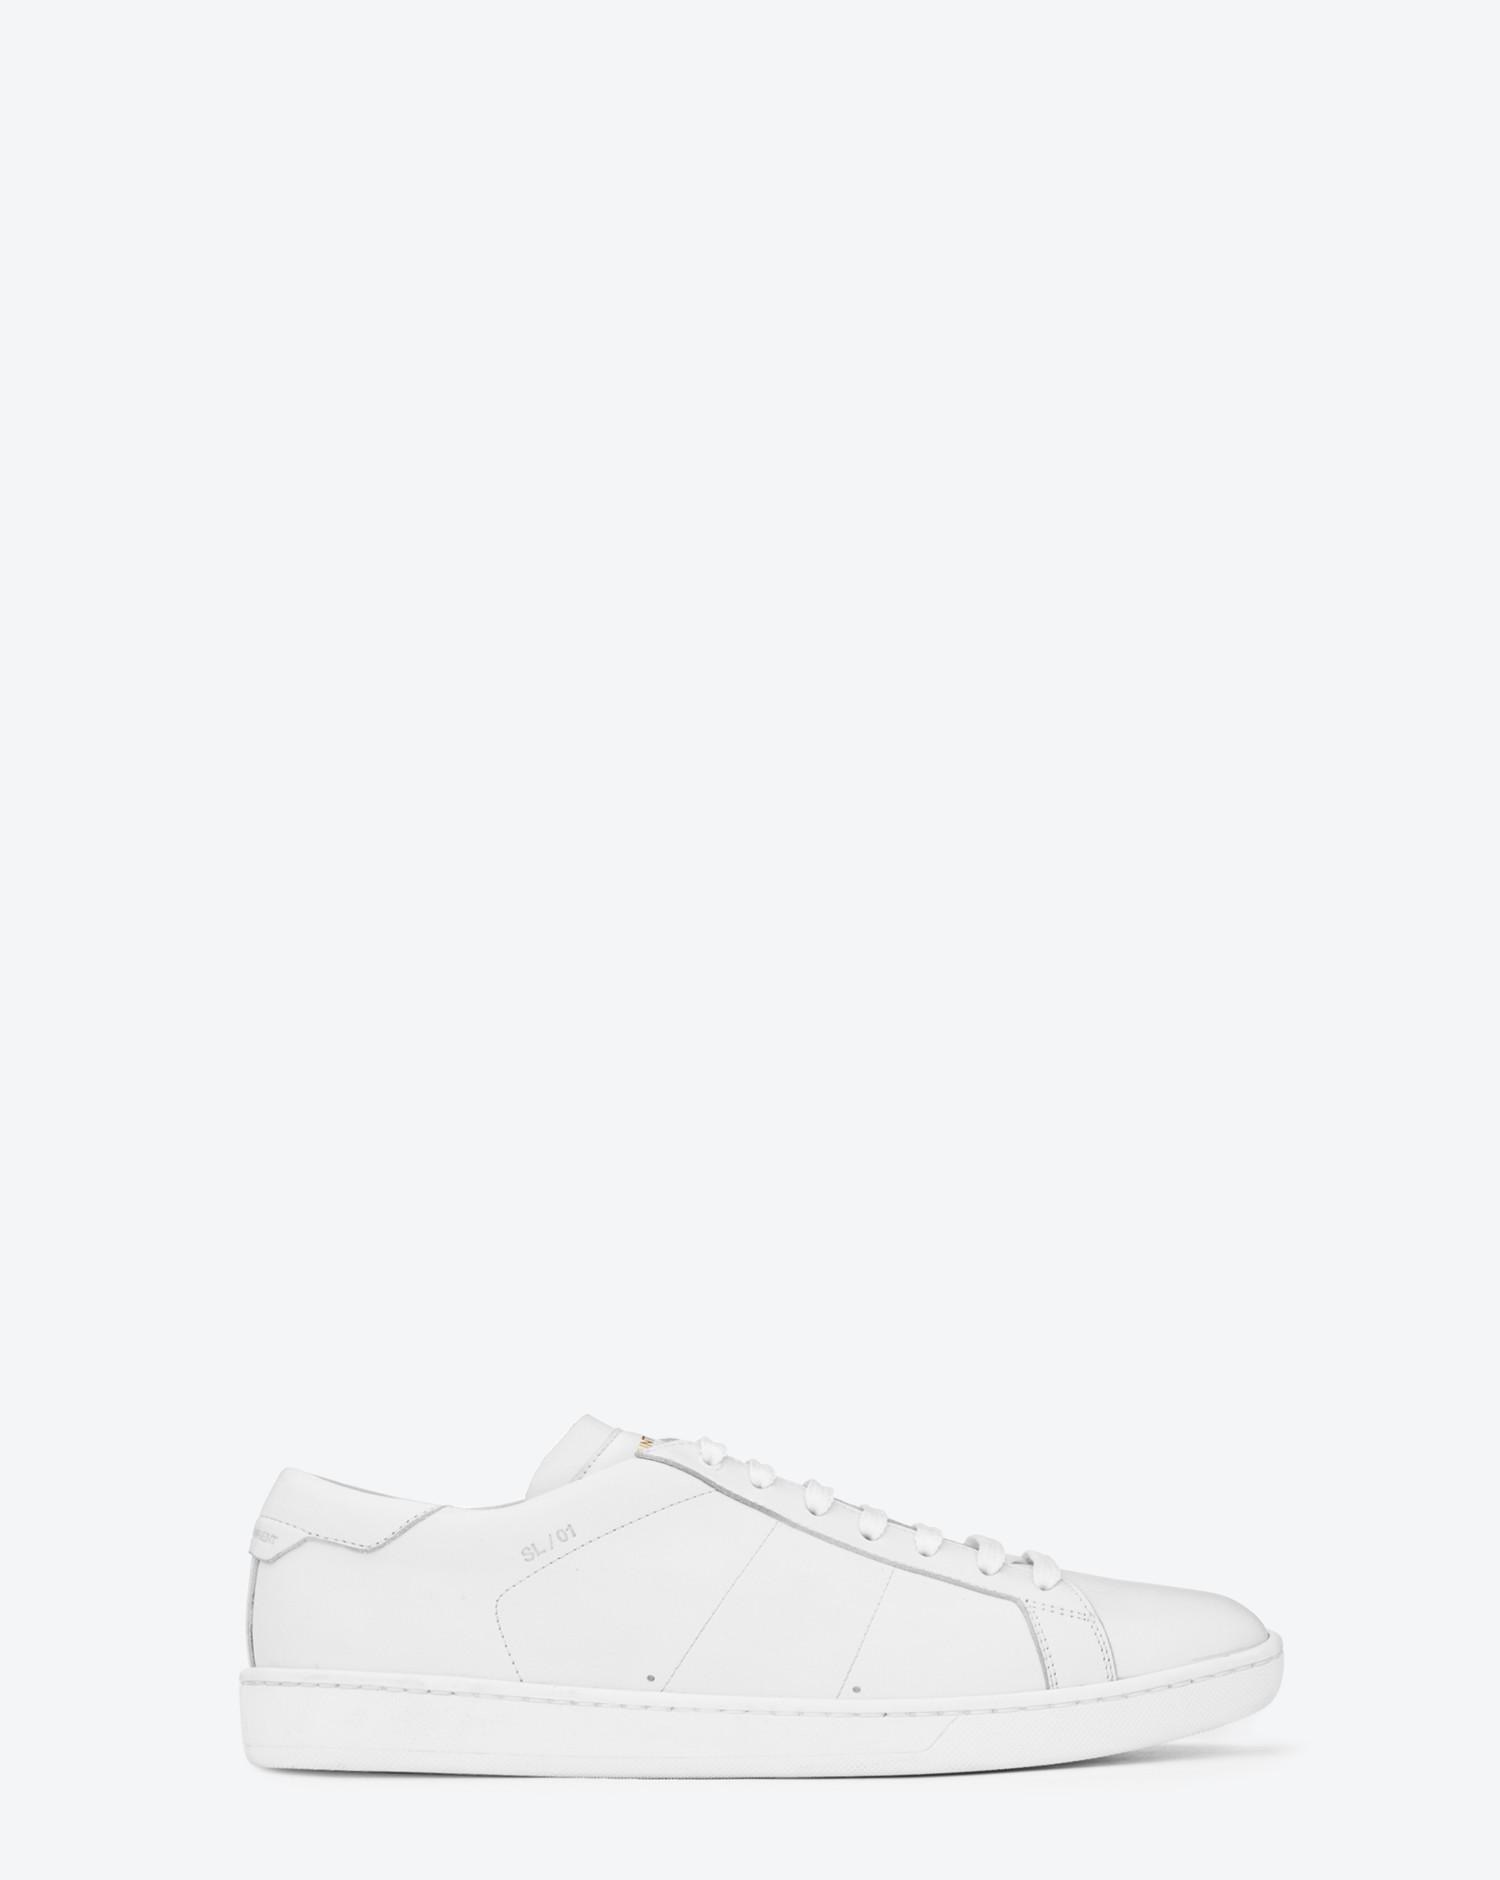 edac88b95a2 Saint Laurent Sl/01 Court Sneakers In Optic White Leather in White ...